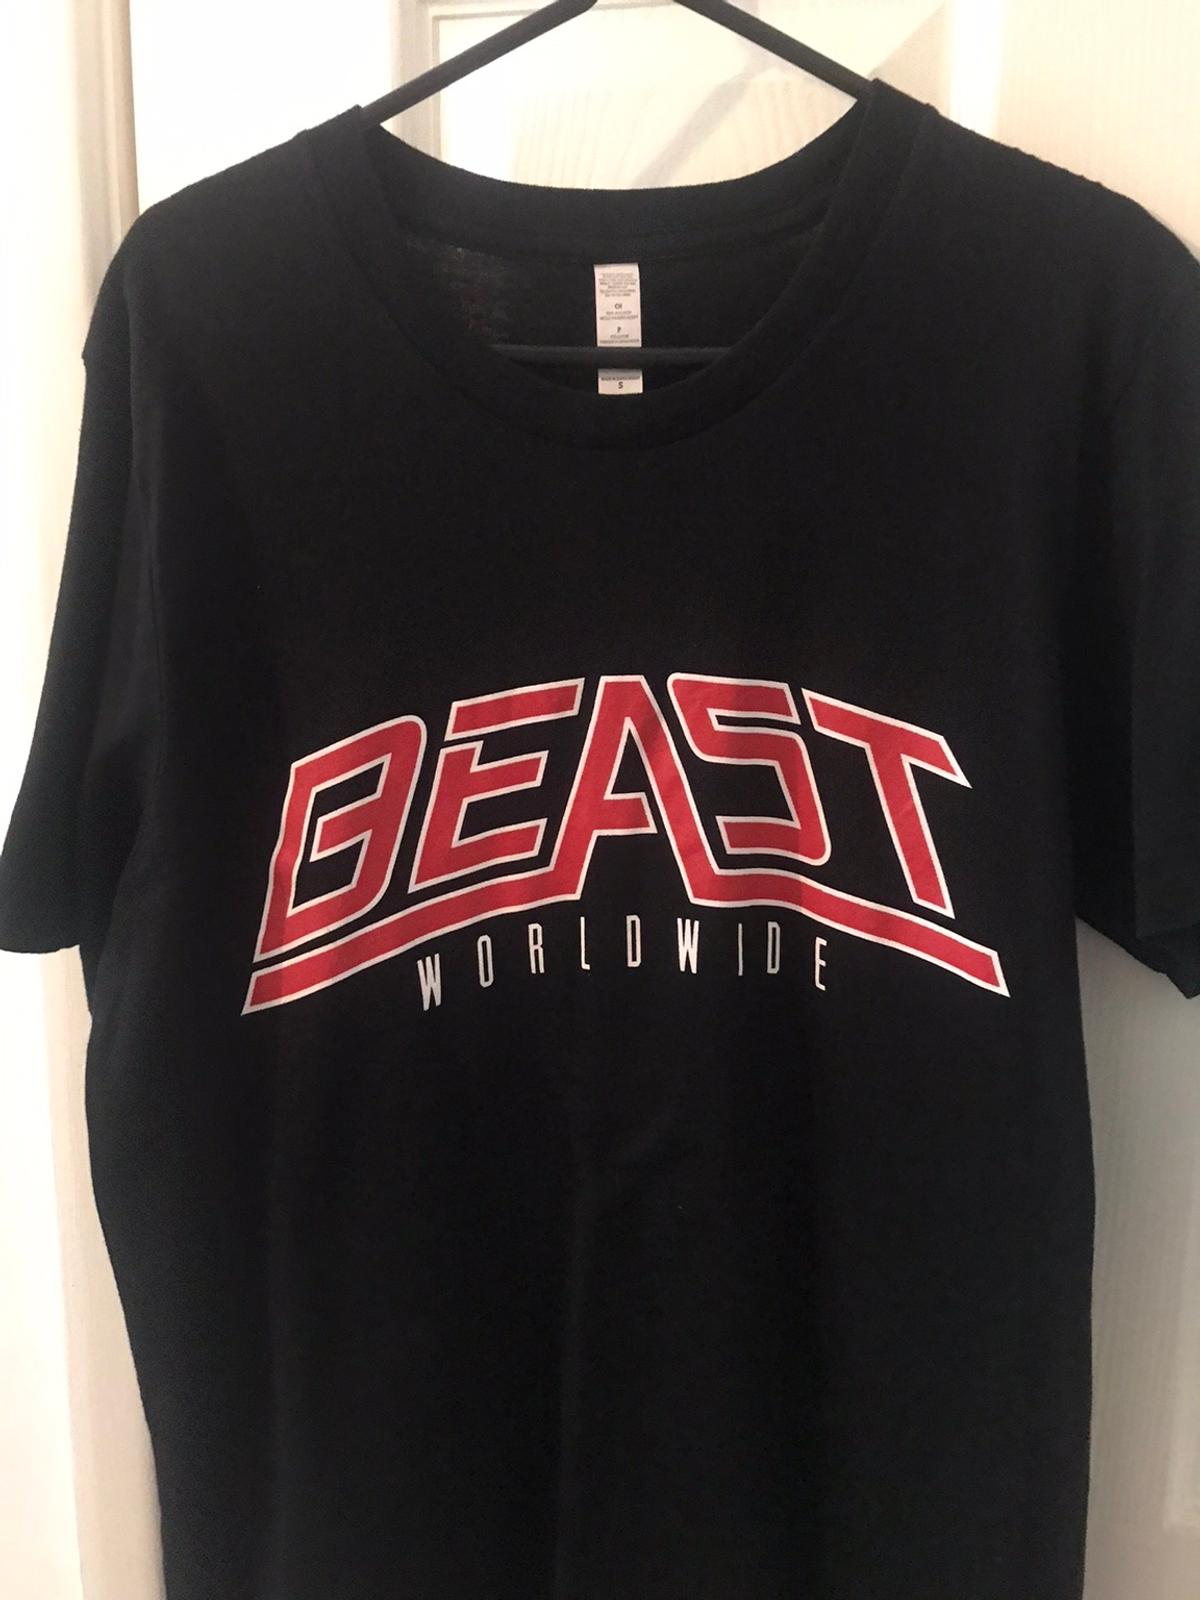 Official KSI Beast Shirt. Hardly ever worn. Size Small/Medium men's.